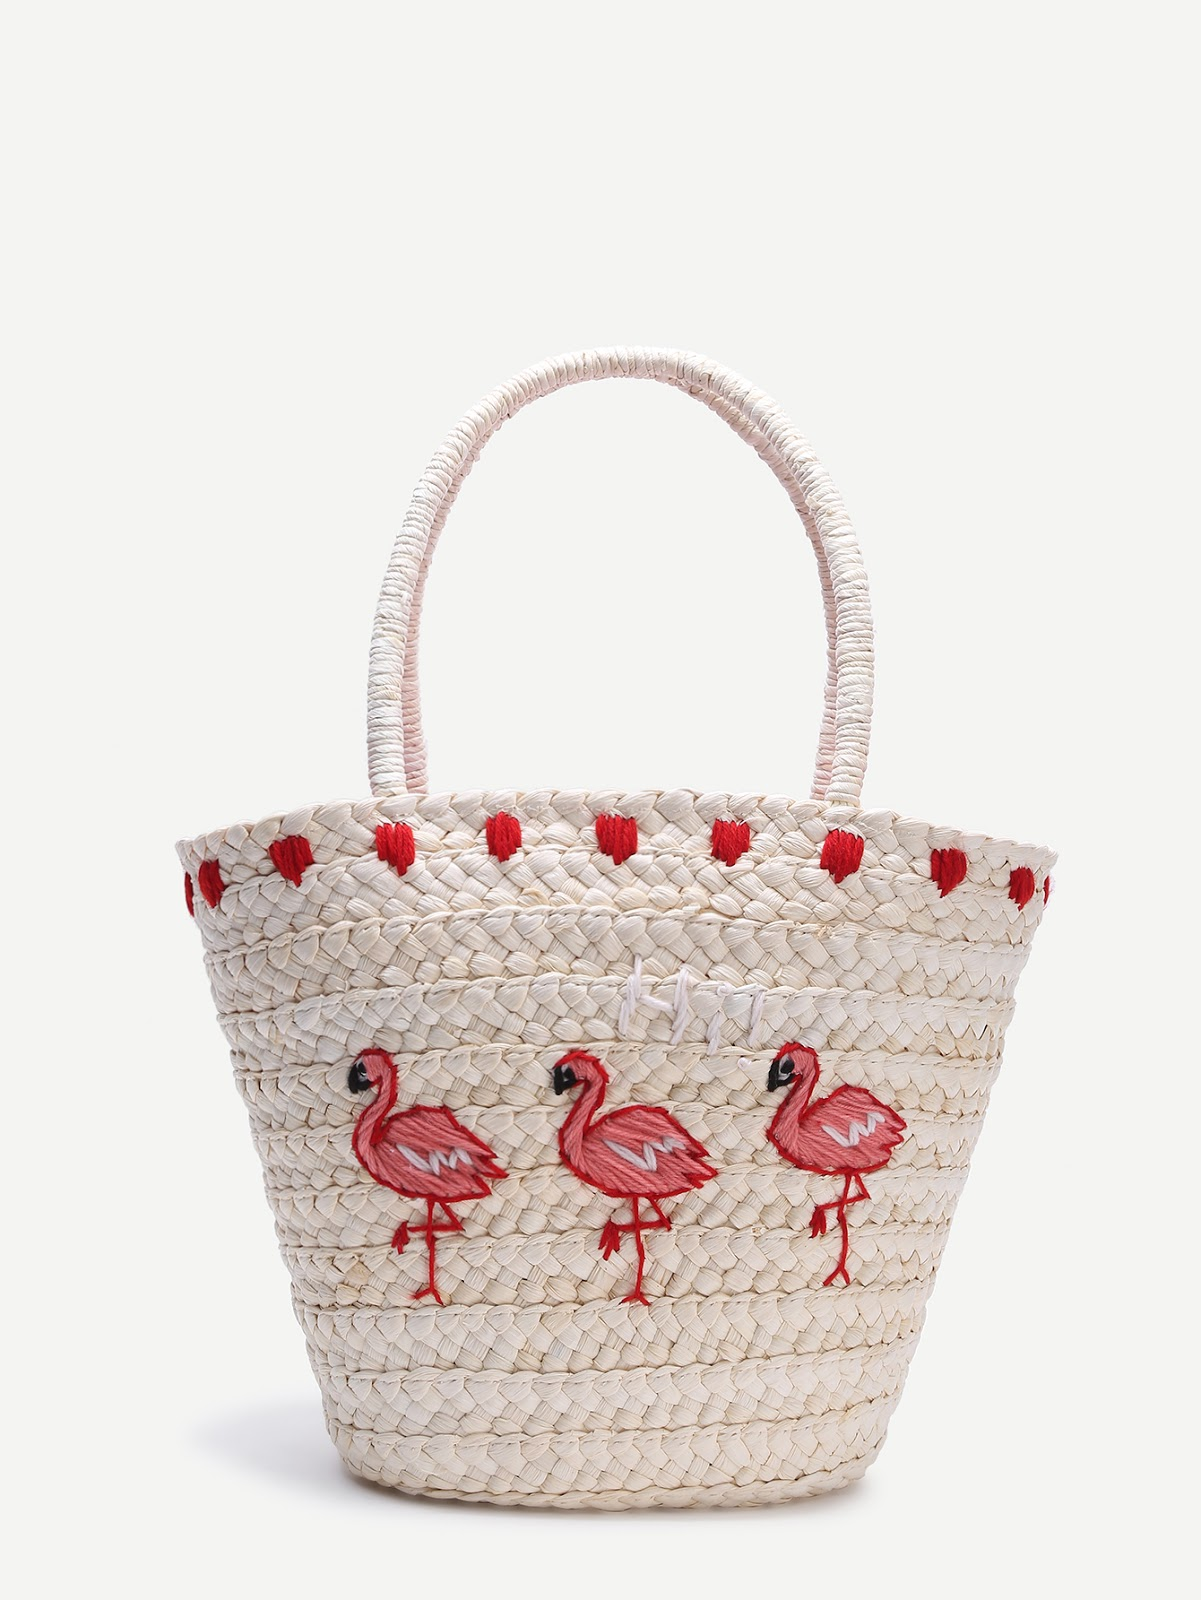 bird detail tote, bird detail basket bag, tote basket bag, indian blog, indian blogger, top indian blog, indian luxury blog, uk blog, british blog, london blog, delhi blogger, street style, spring summer 2017, spring summer lookbook, wear trends, how to, how to style, effortless chic, parisian style, how to dress, style tips, street style delhi, delhi blog, delhi fashion blogger, how to dress like a street style pro, street style tips, parisian chic, parisian outfit, london street style, weekend outfit, city girl style, boho chic look, how to effortless chic, summer tips, summer fashion, top europe style, summer blogger outfit, basket bag, where to shop basket bag, style basket bag